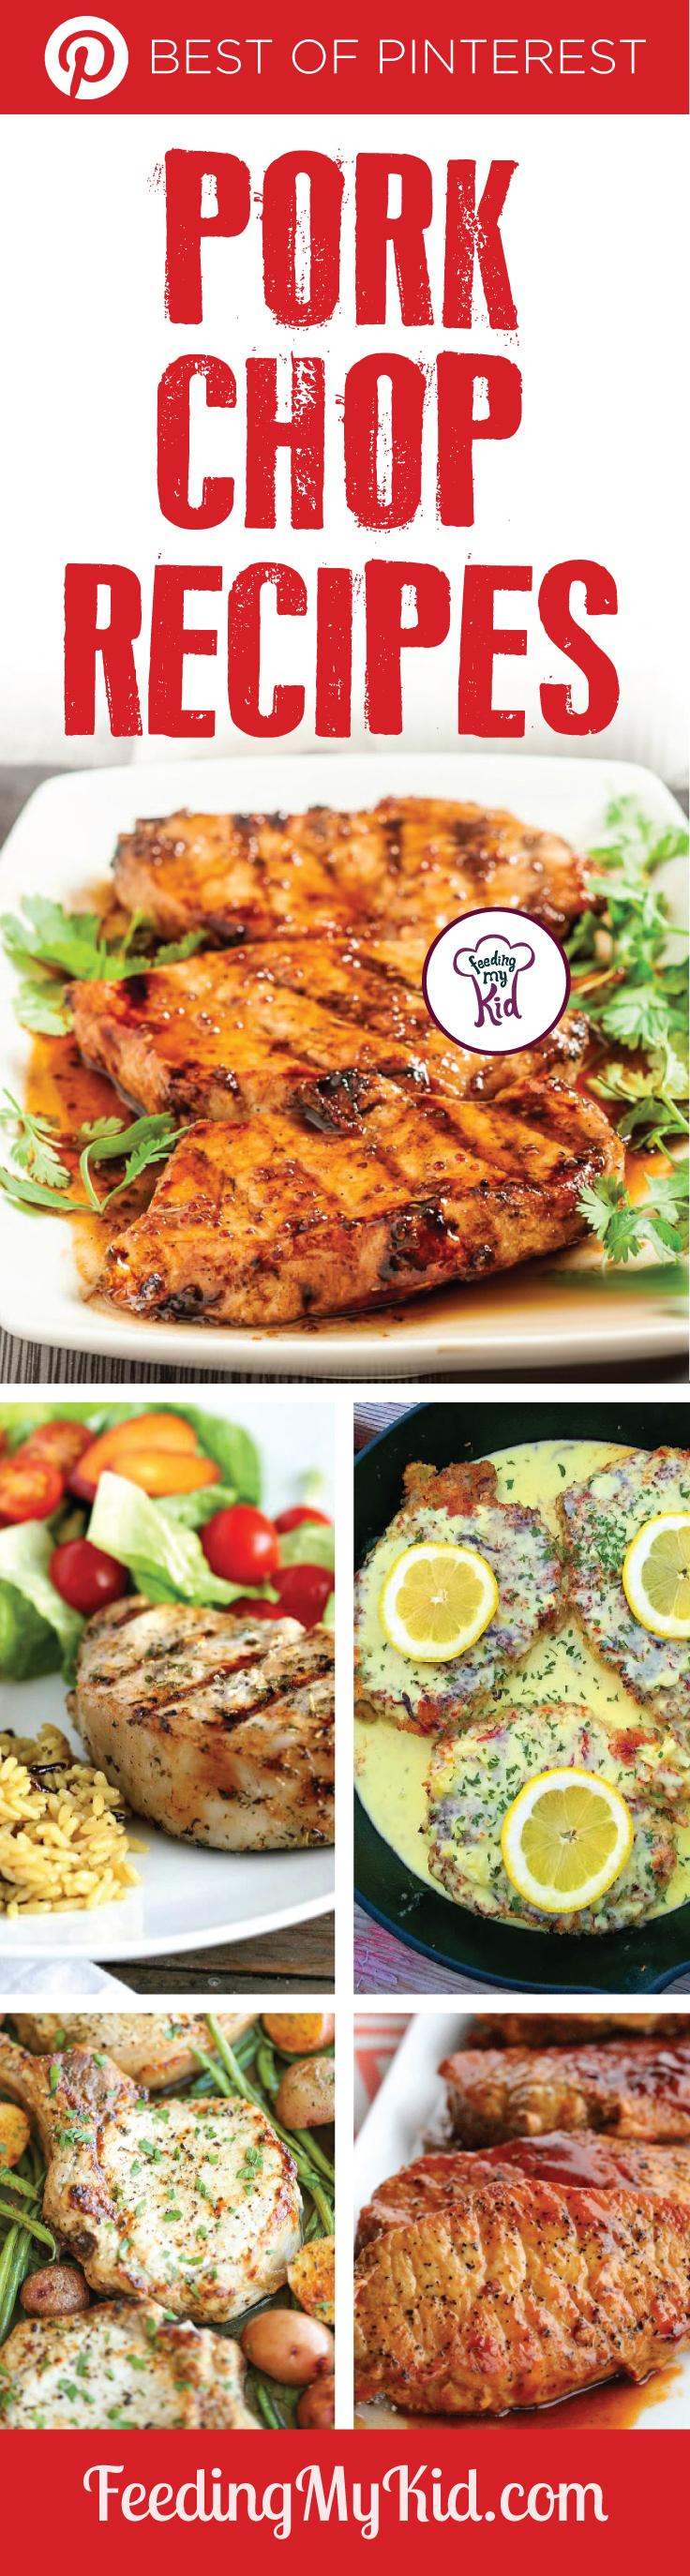 You'll love each one of these tasty pork recipes. Give them a try! Even the pickiest of easters will enjoy these dinner recipes. Feeding My Kid is filled with all the information you need about how to raise your kids, from healthy tips to nutritious recipes. #FeedingMyKid #porkrecipes #recipes #dinner